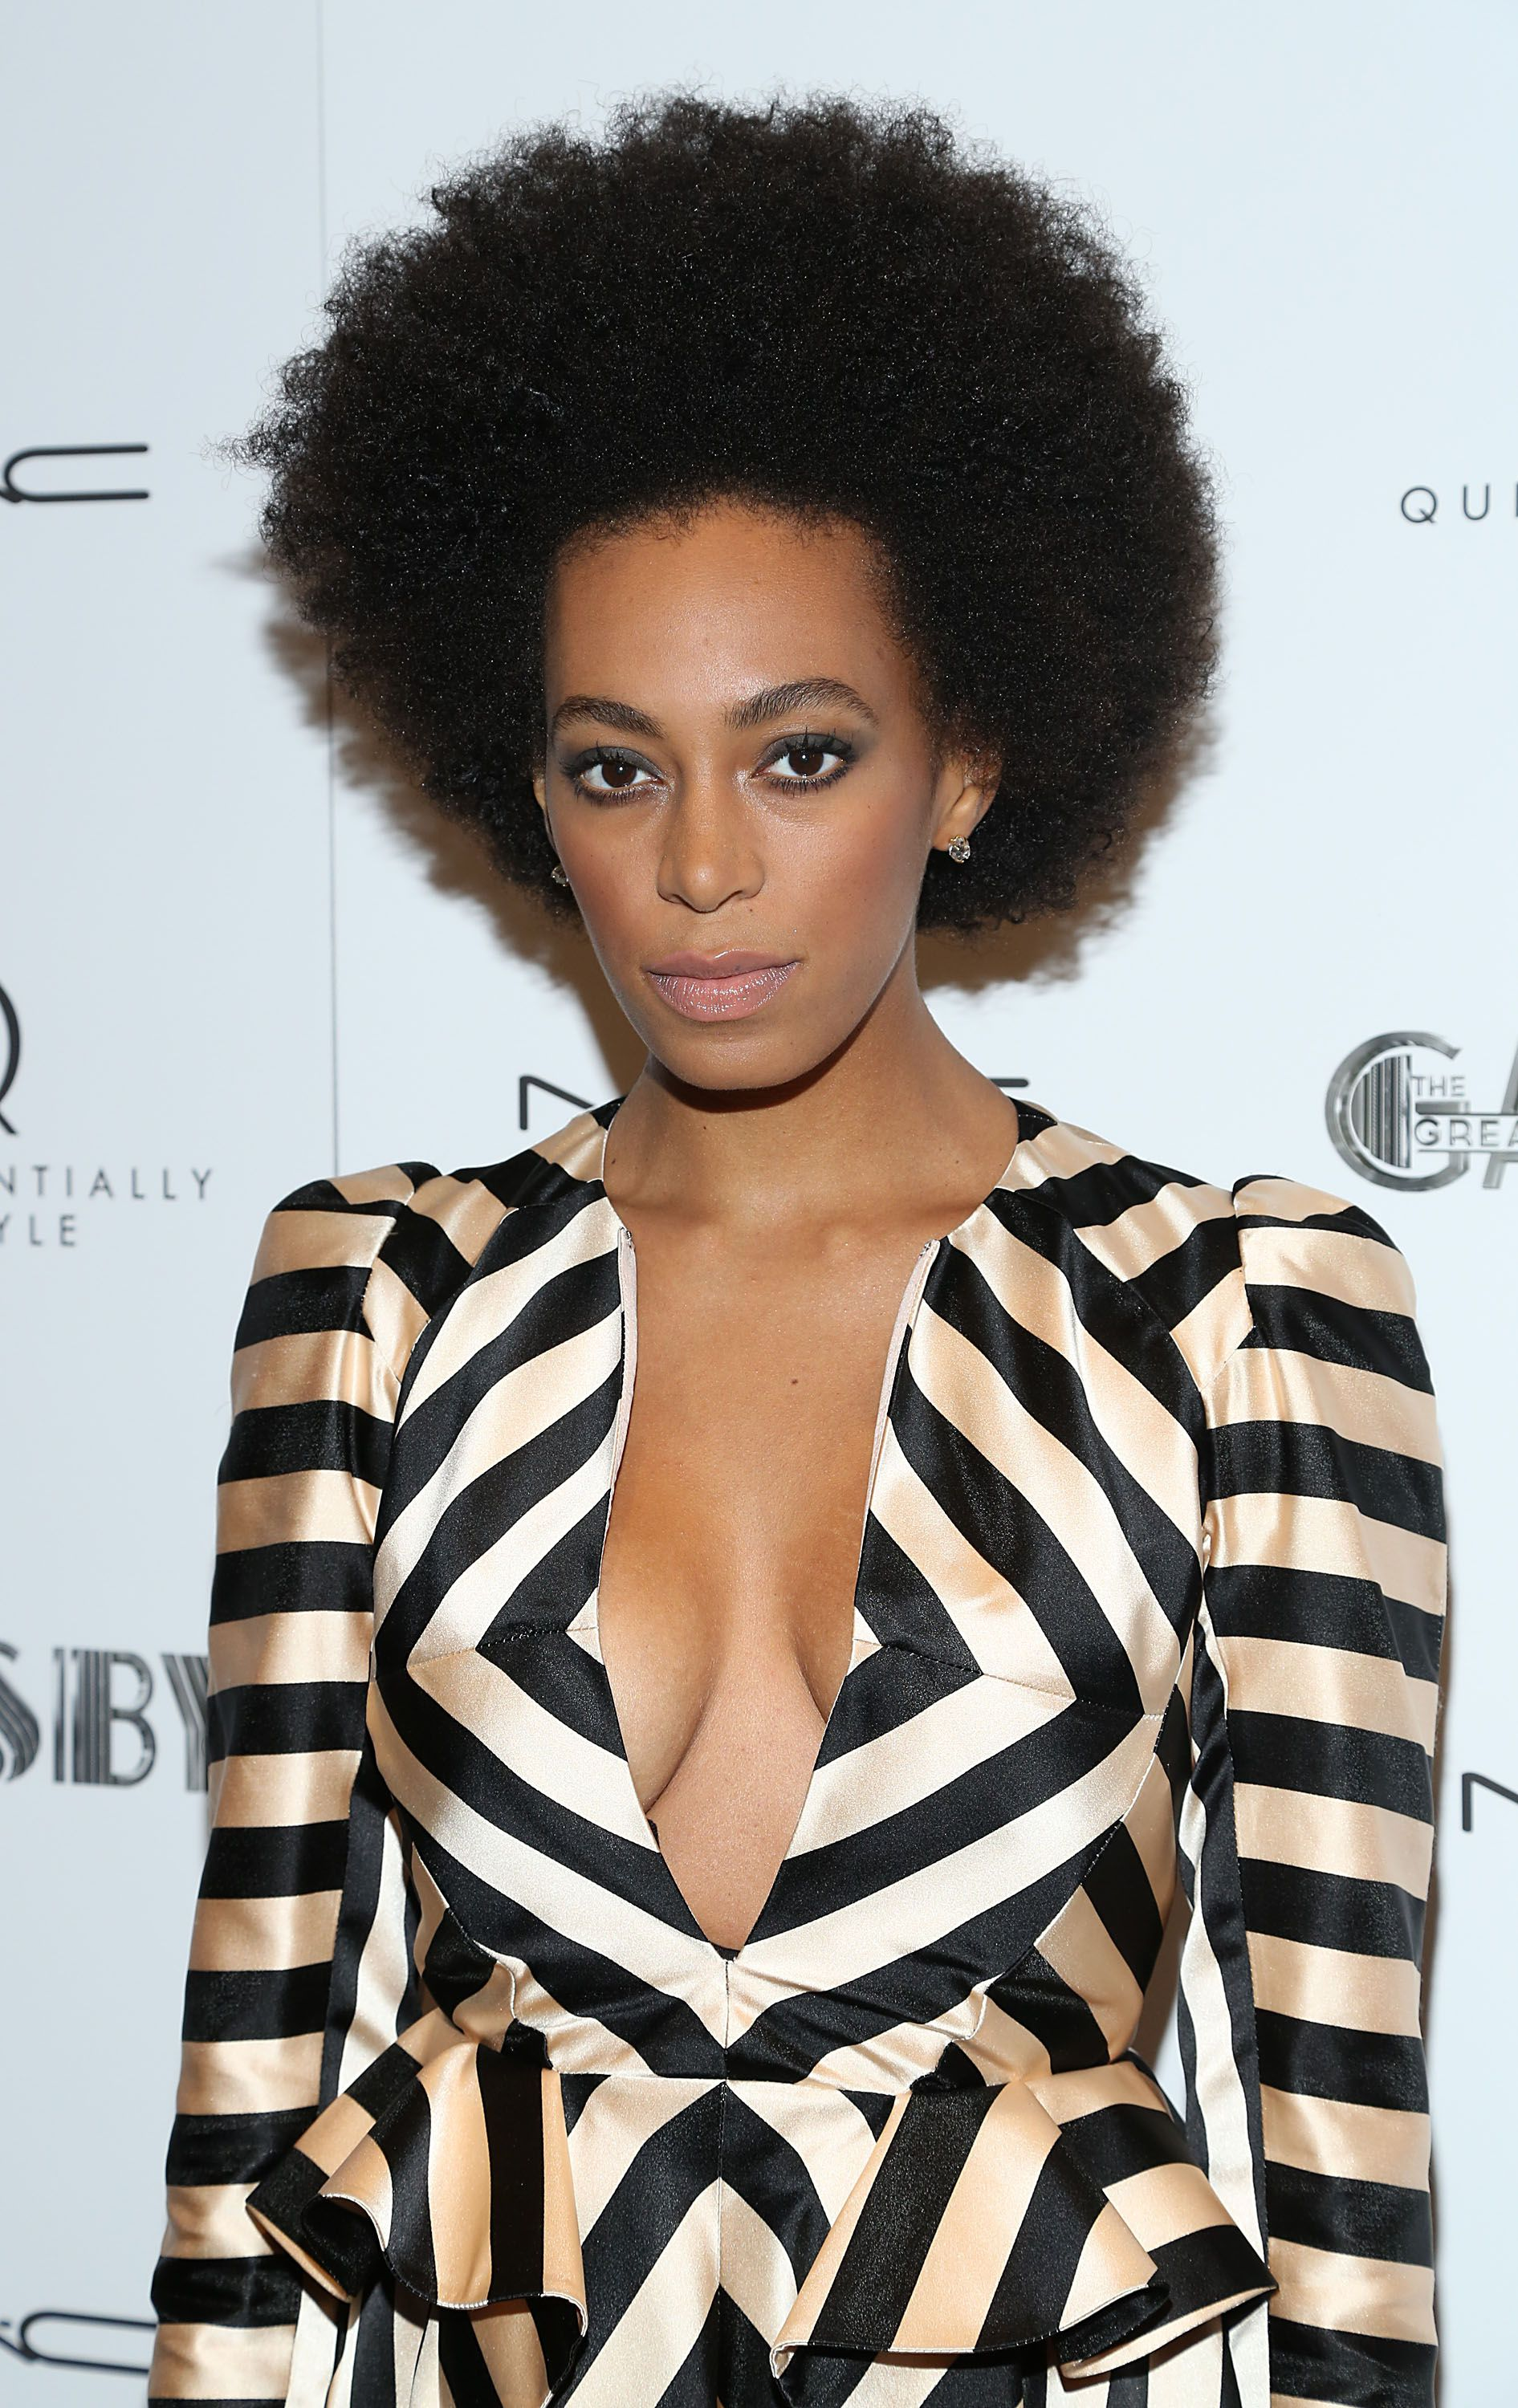 Solange Knowles hot busty photo